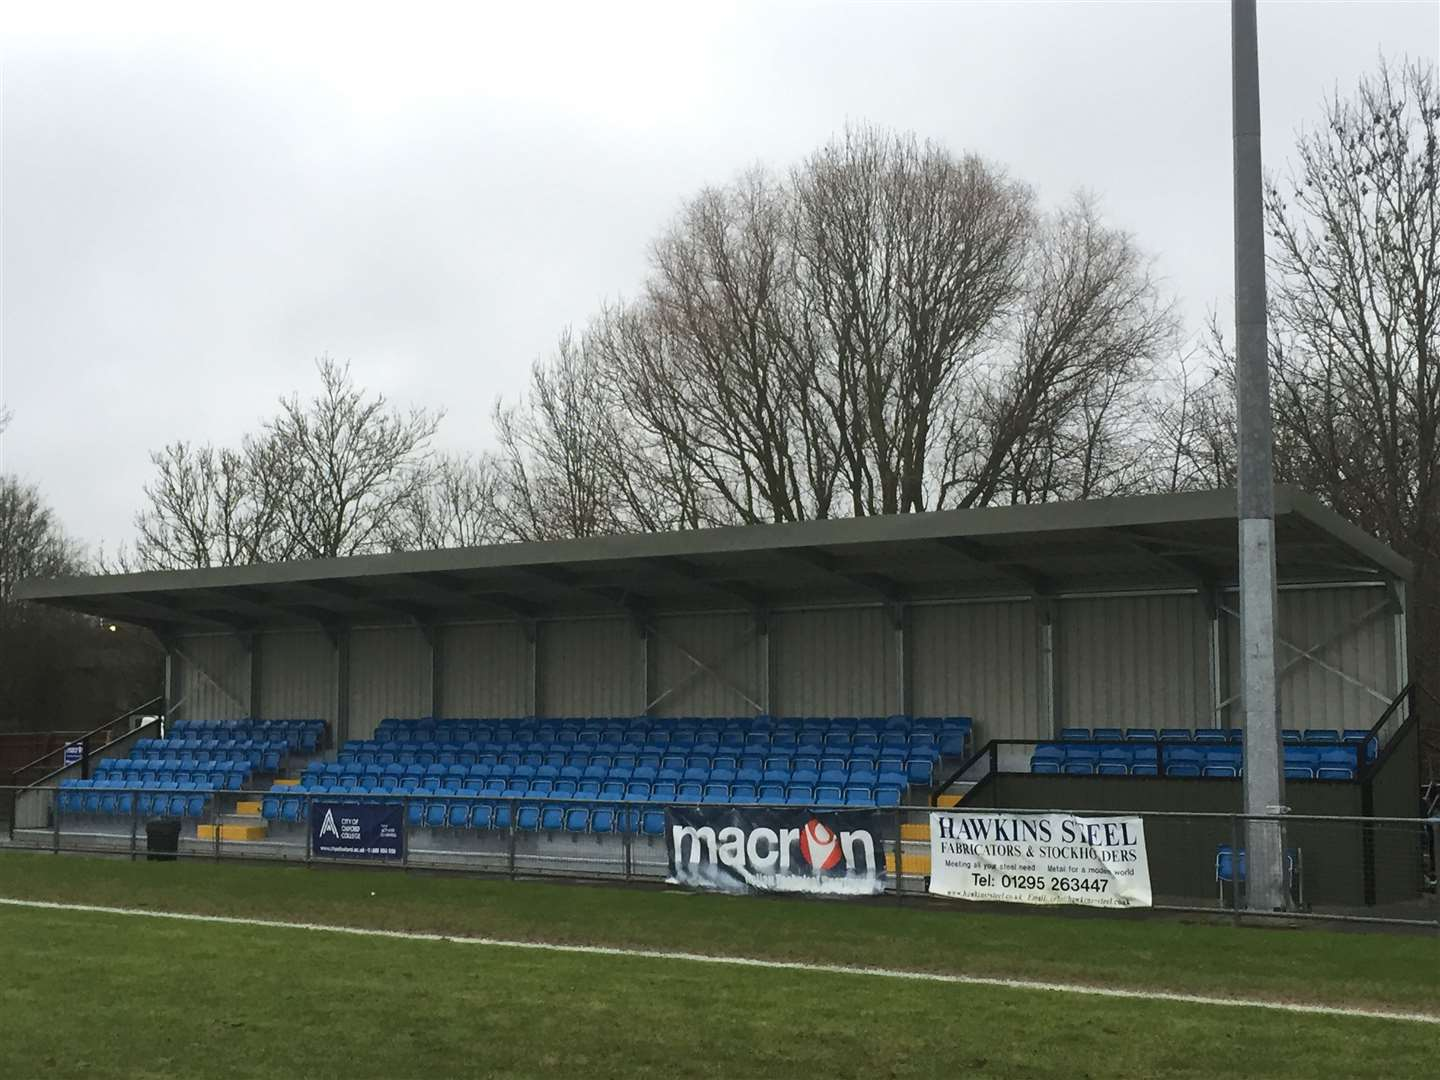 Non-league grounds have been empty since March